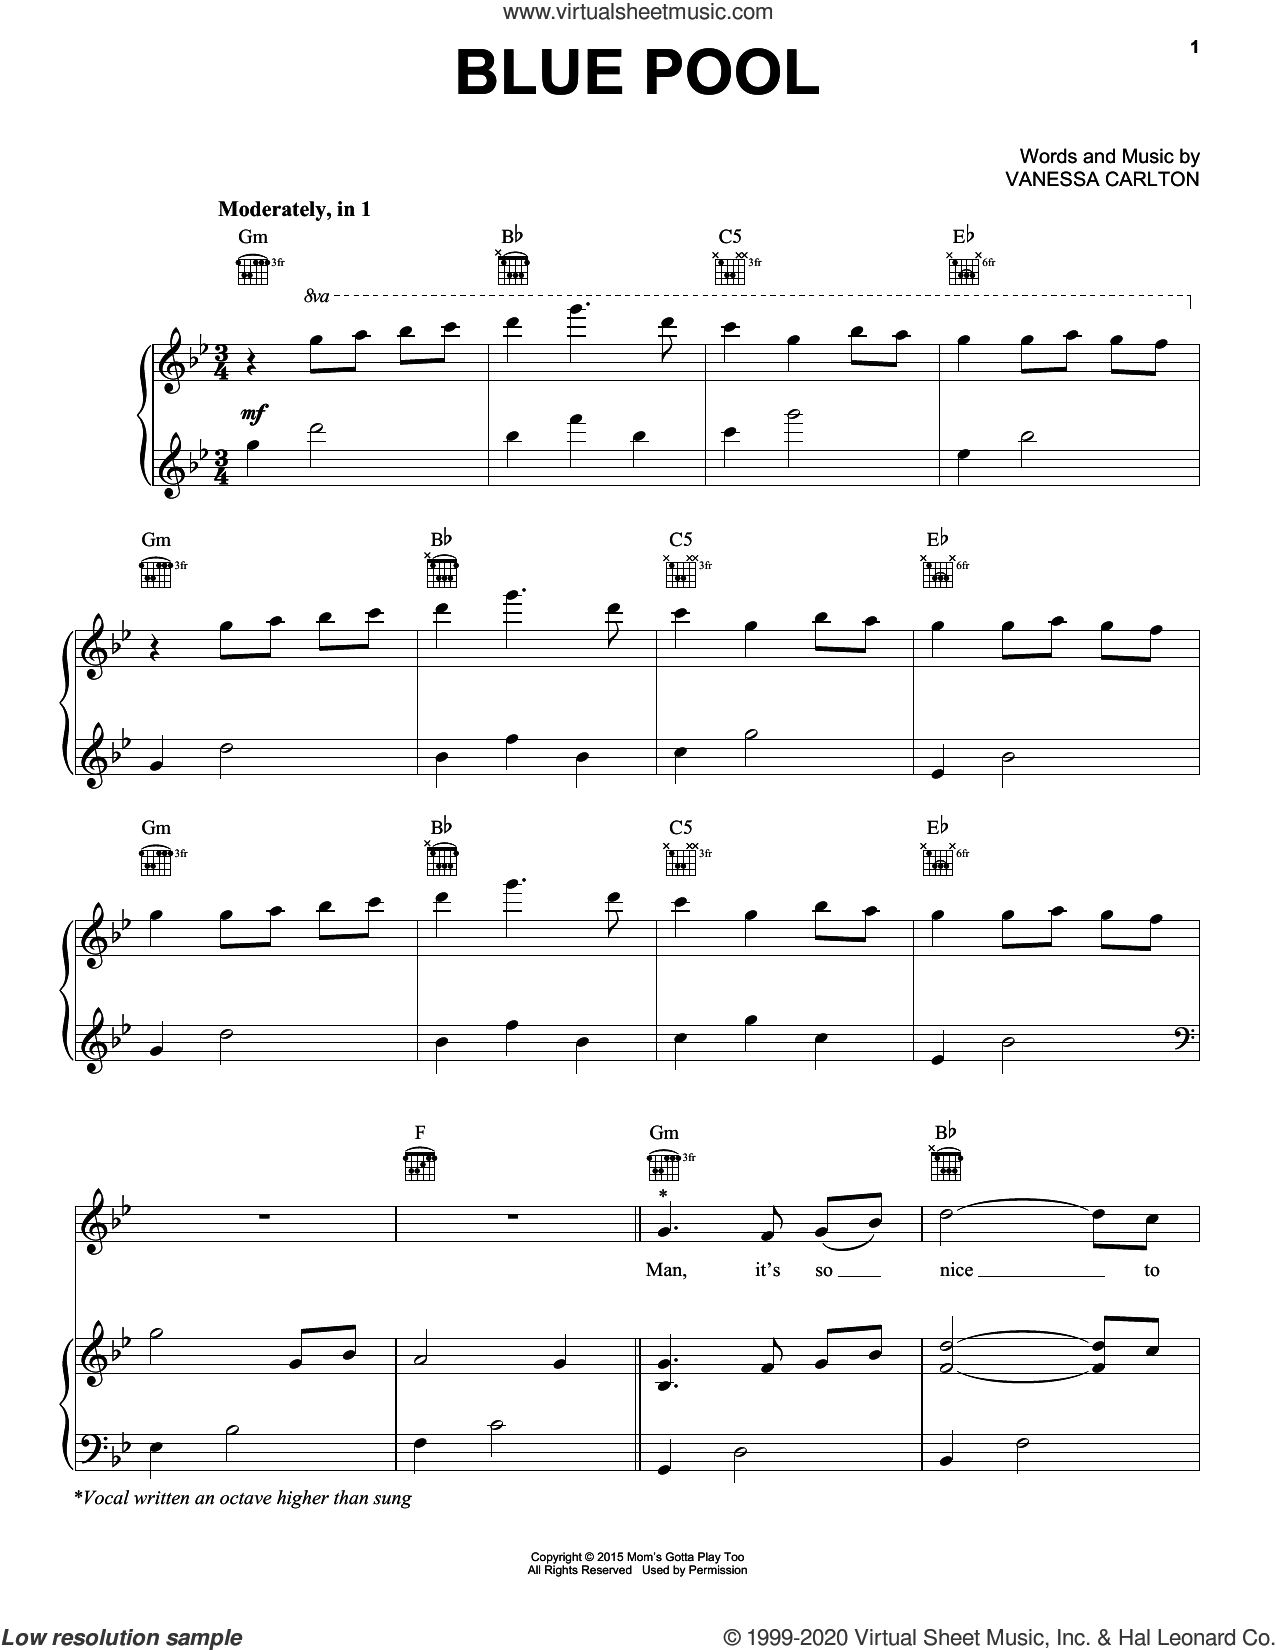 Blue Pool sheet music for voice, piano or guitar by Vanessa Carlton, intermediate skill level